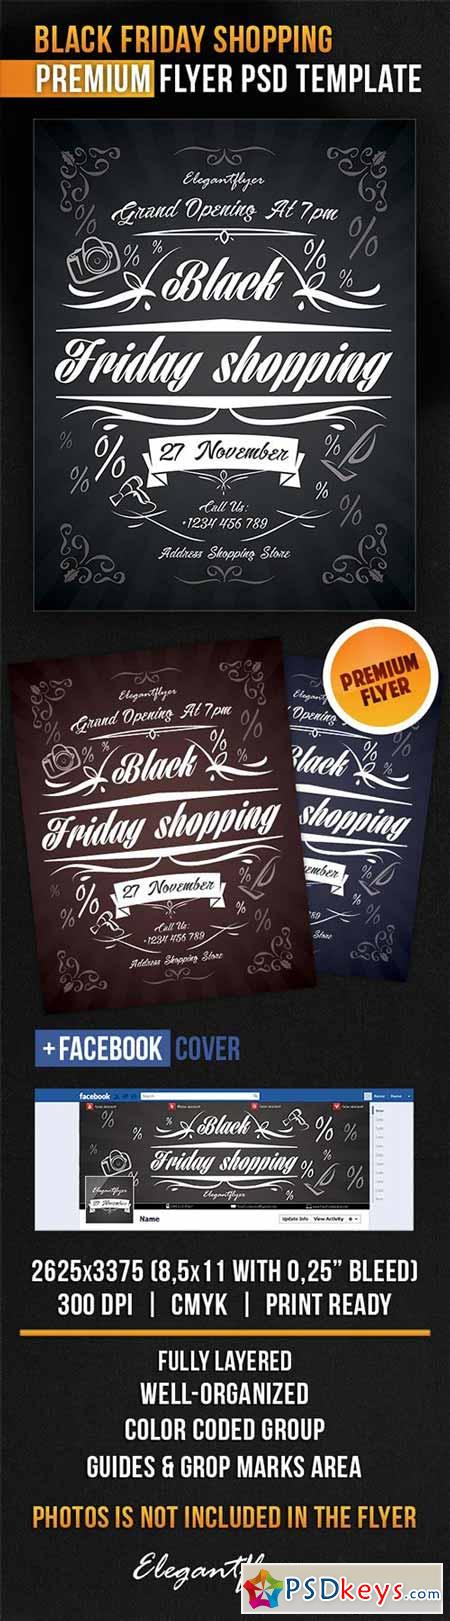 black friday shopping flyer psd template facebook cover free download photoshop vector stock. Black Bedroom Furniture Sets. Home Design Ideas